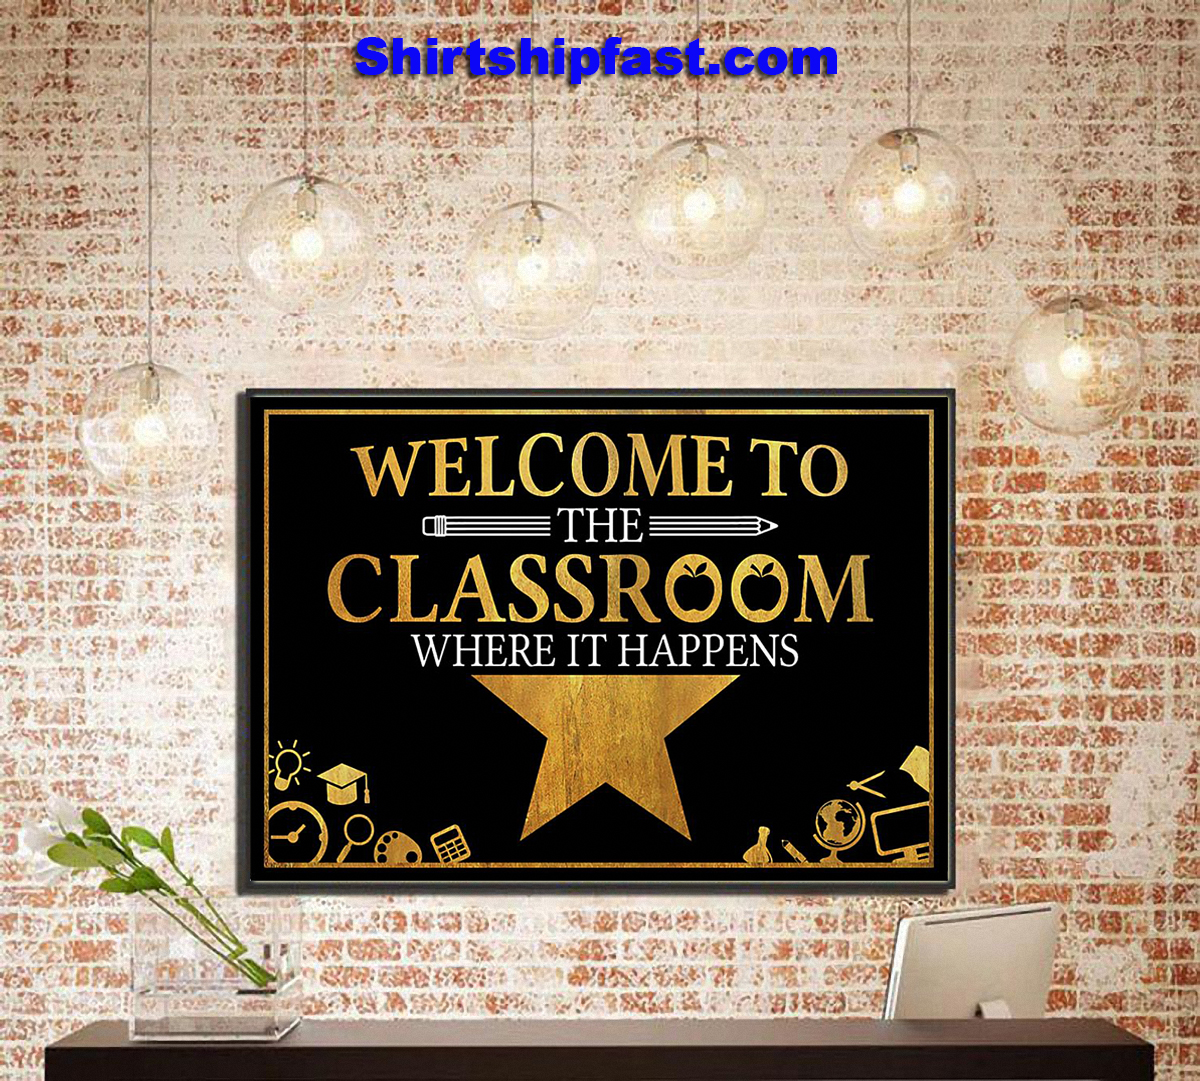 Welcome to the classroom where it happens poster - Picture 3